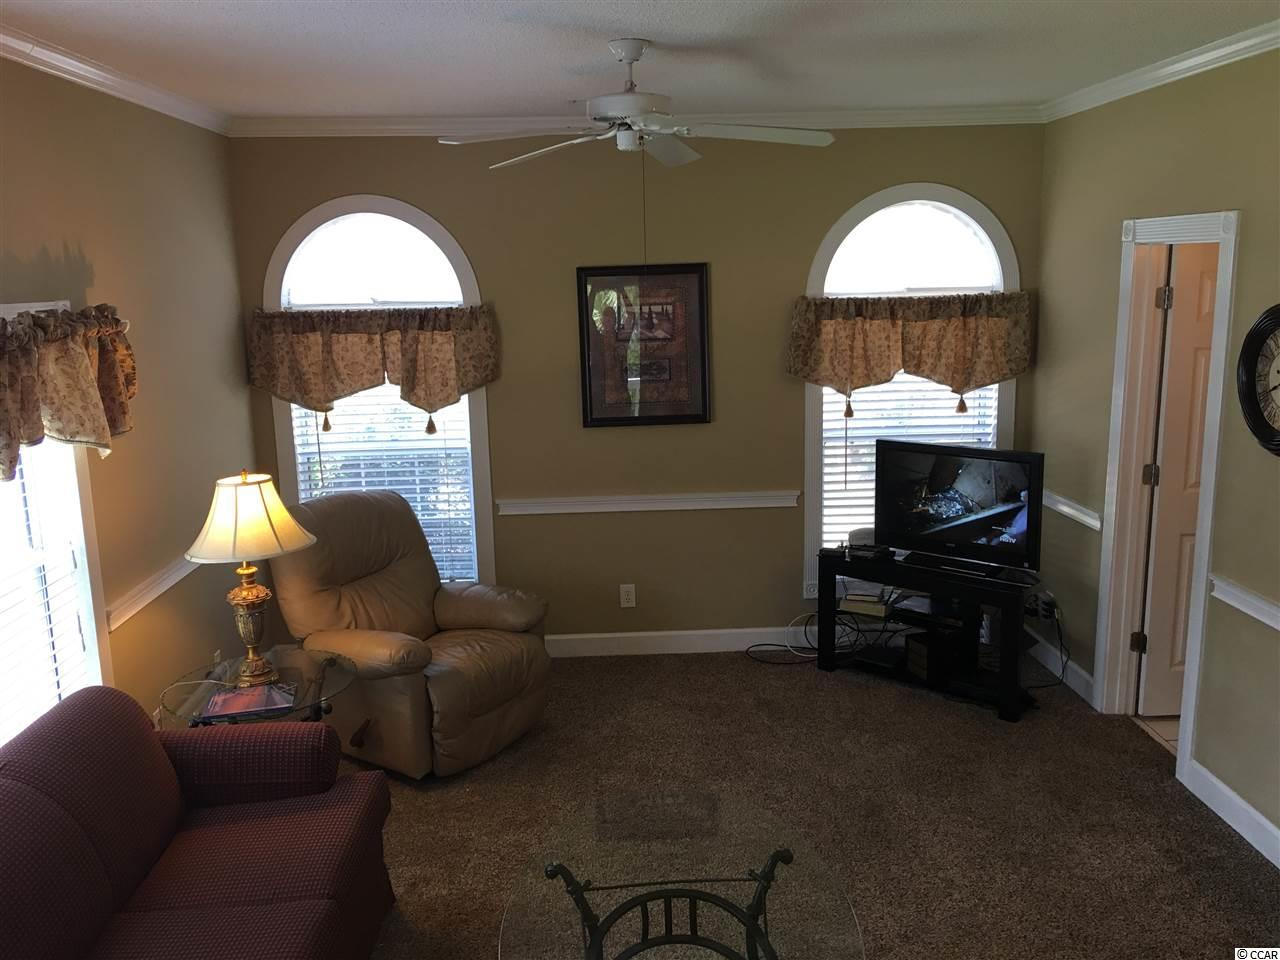 MAGNOLIA PLACE condo at 4757 WILD IRIS DRIVE 101 for sale. 1714768